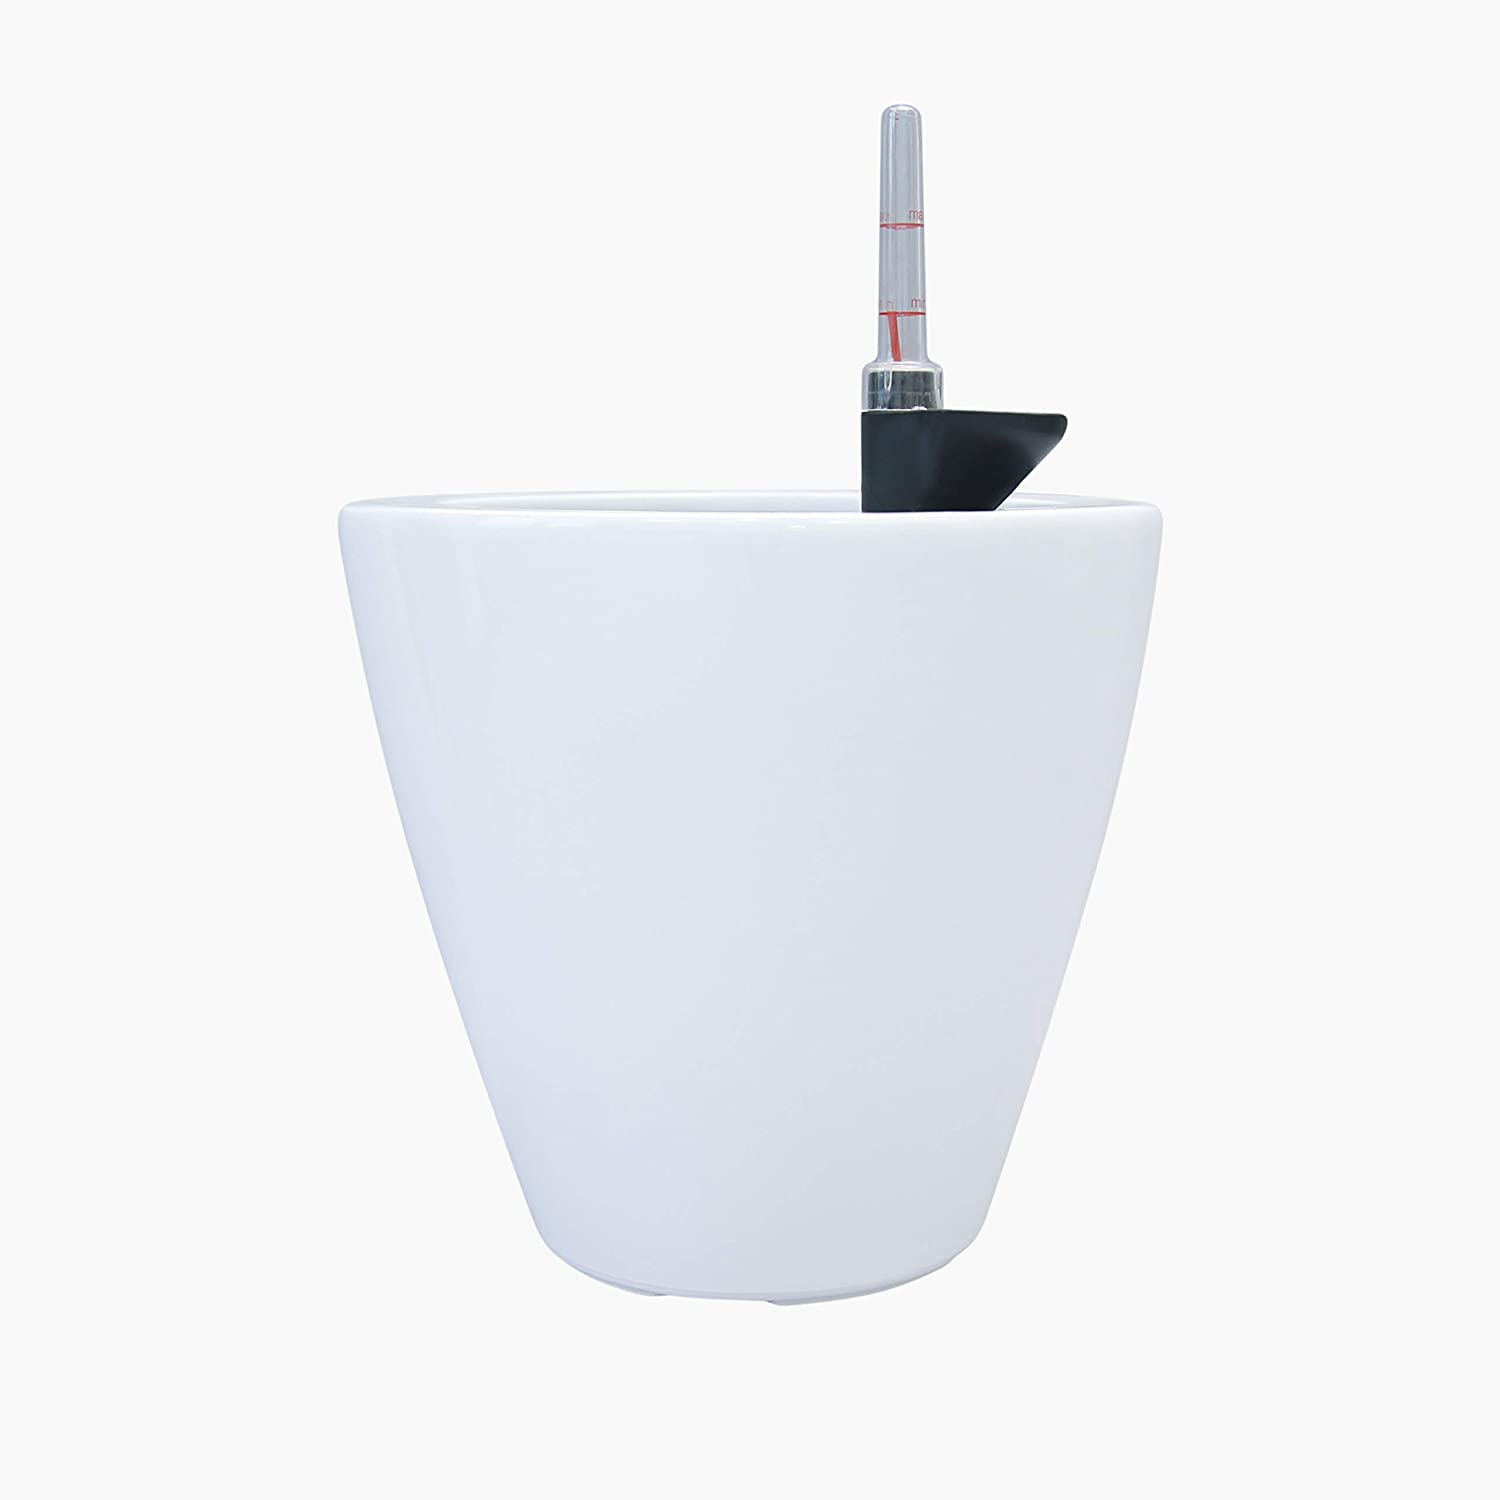 """CATLEZA Smart Self-Watering Round Planter Pot for Indoor and Outdoor 10.2"""" Cone Eco-Friendly Suitable for All Plants, Herb, Succulents, Flowers in White"""